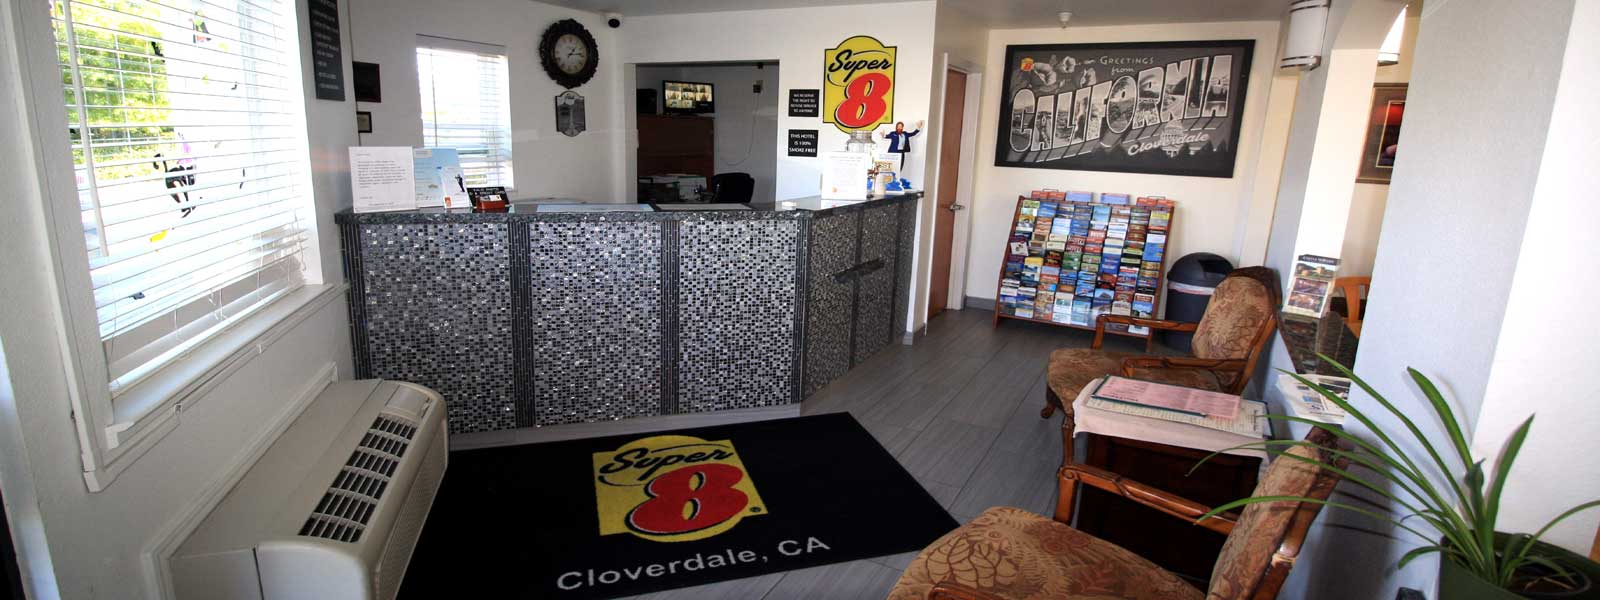 Cloverdale California Budget Affordable Hotels Motels Super 8 Wine Country Sonoma